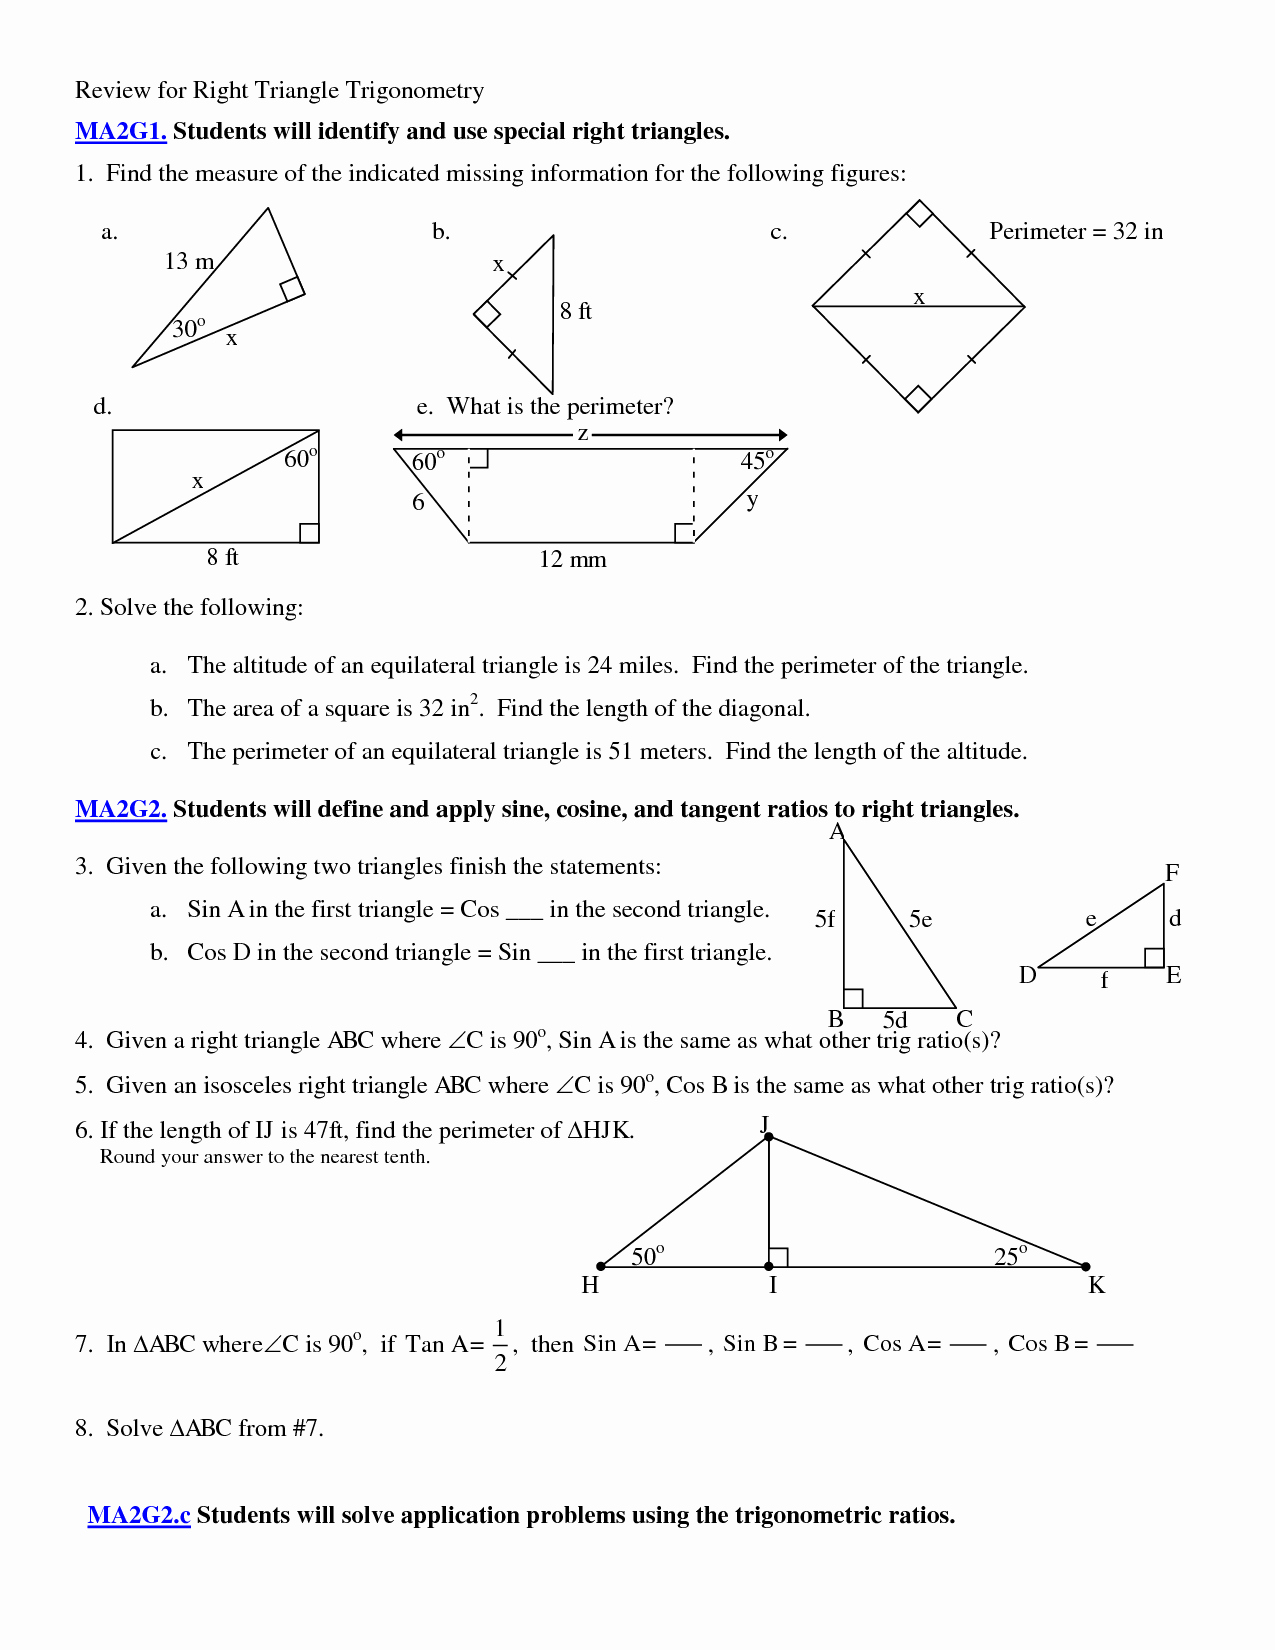 Right Triangle Trigonometry Worksheet Answers Unique 5 Best Of Applications Trigonometry Worksheet